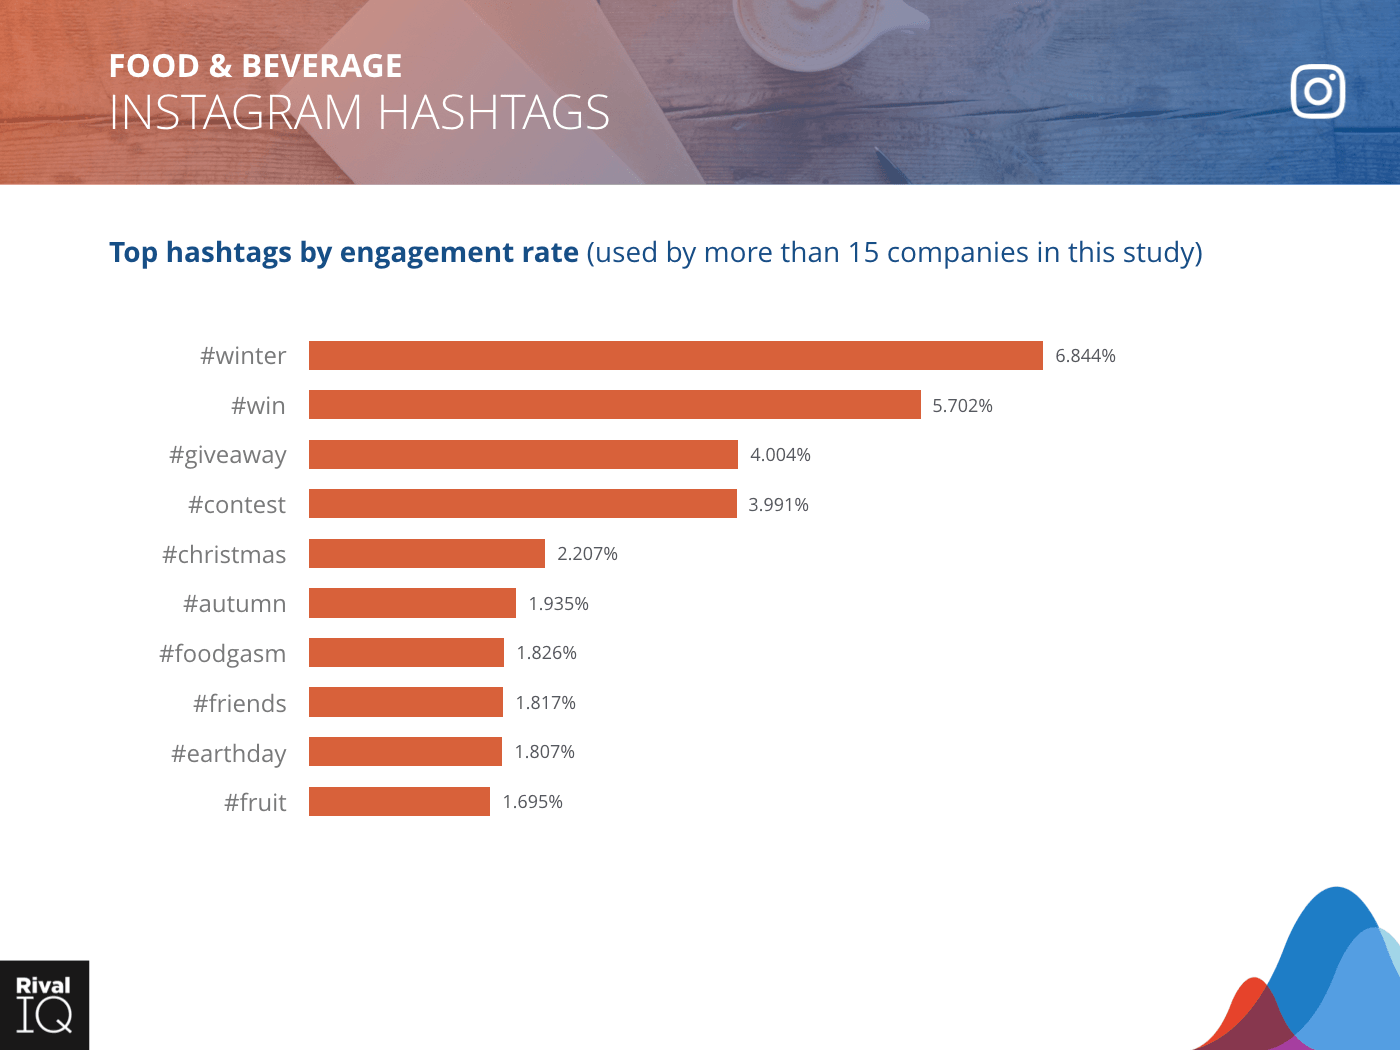 Food & Beverage Industry: bar graph, top hashtags by engagement rate on Instagram